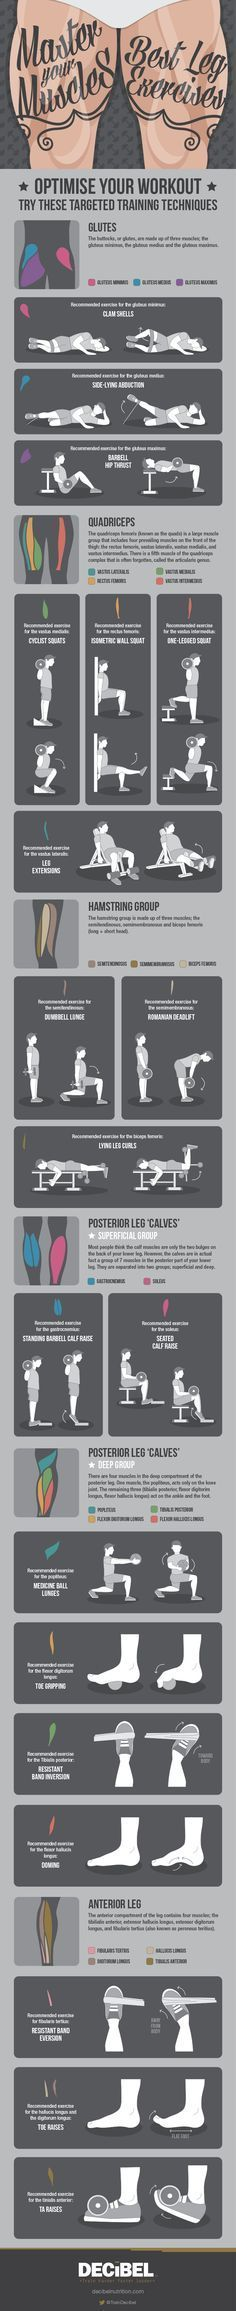 "If you feel self-conscious about having really skinny legs, you need to do some training to bulk them up. This infographic features 19 exercises you can do to take your legs up a few sizes. A Skinny Person's Guide to Gaining Weight A Skinny Person's Guide to Gaining Weight A Skinny Person's Guide to Gaining Weight If you're a self-described ""skinny"" person trying to put on weight, you probably… Read more Read more…"